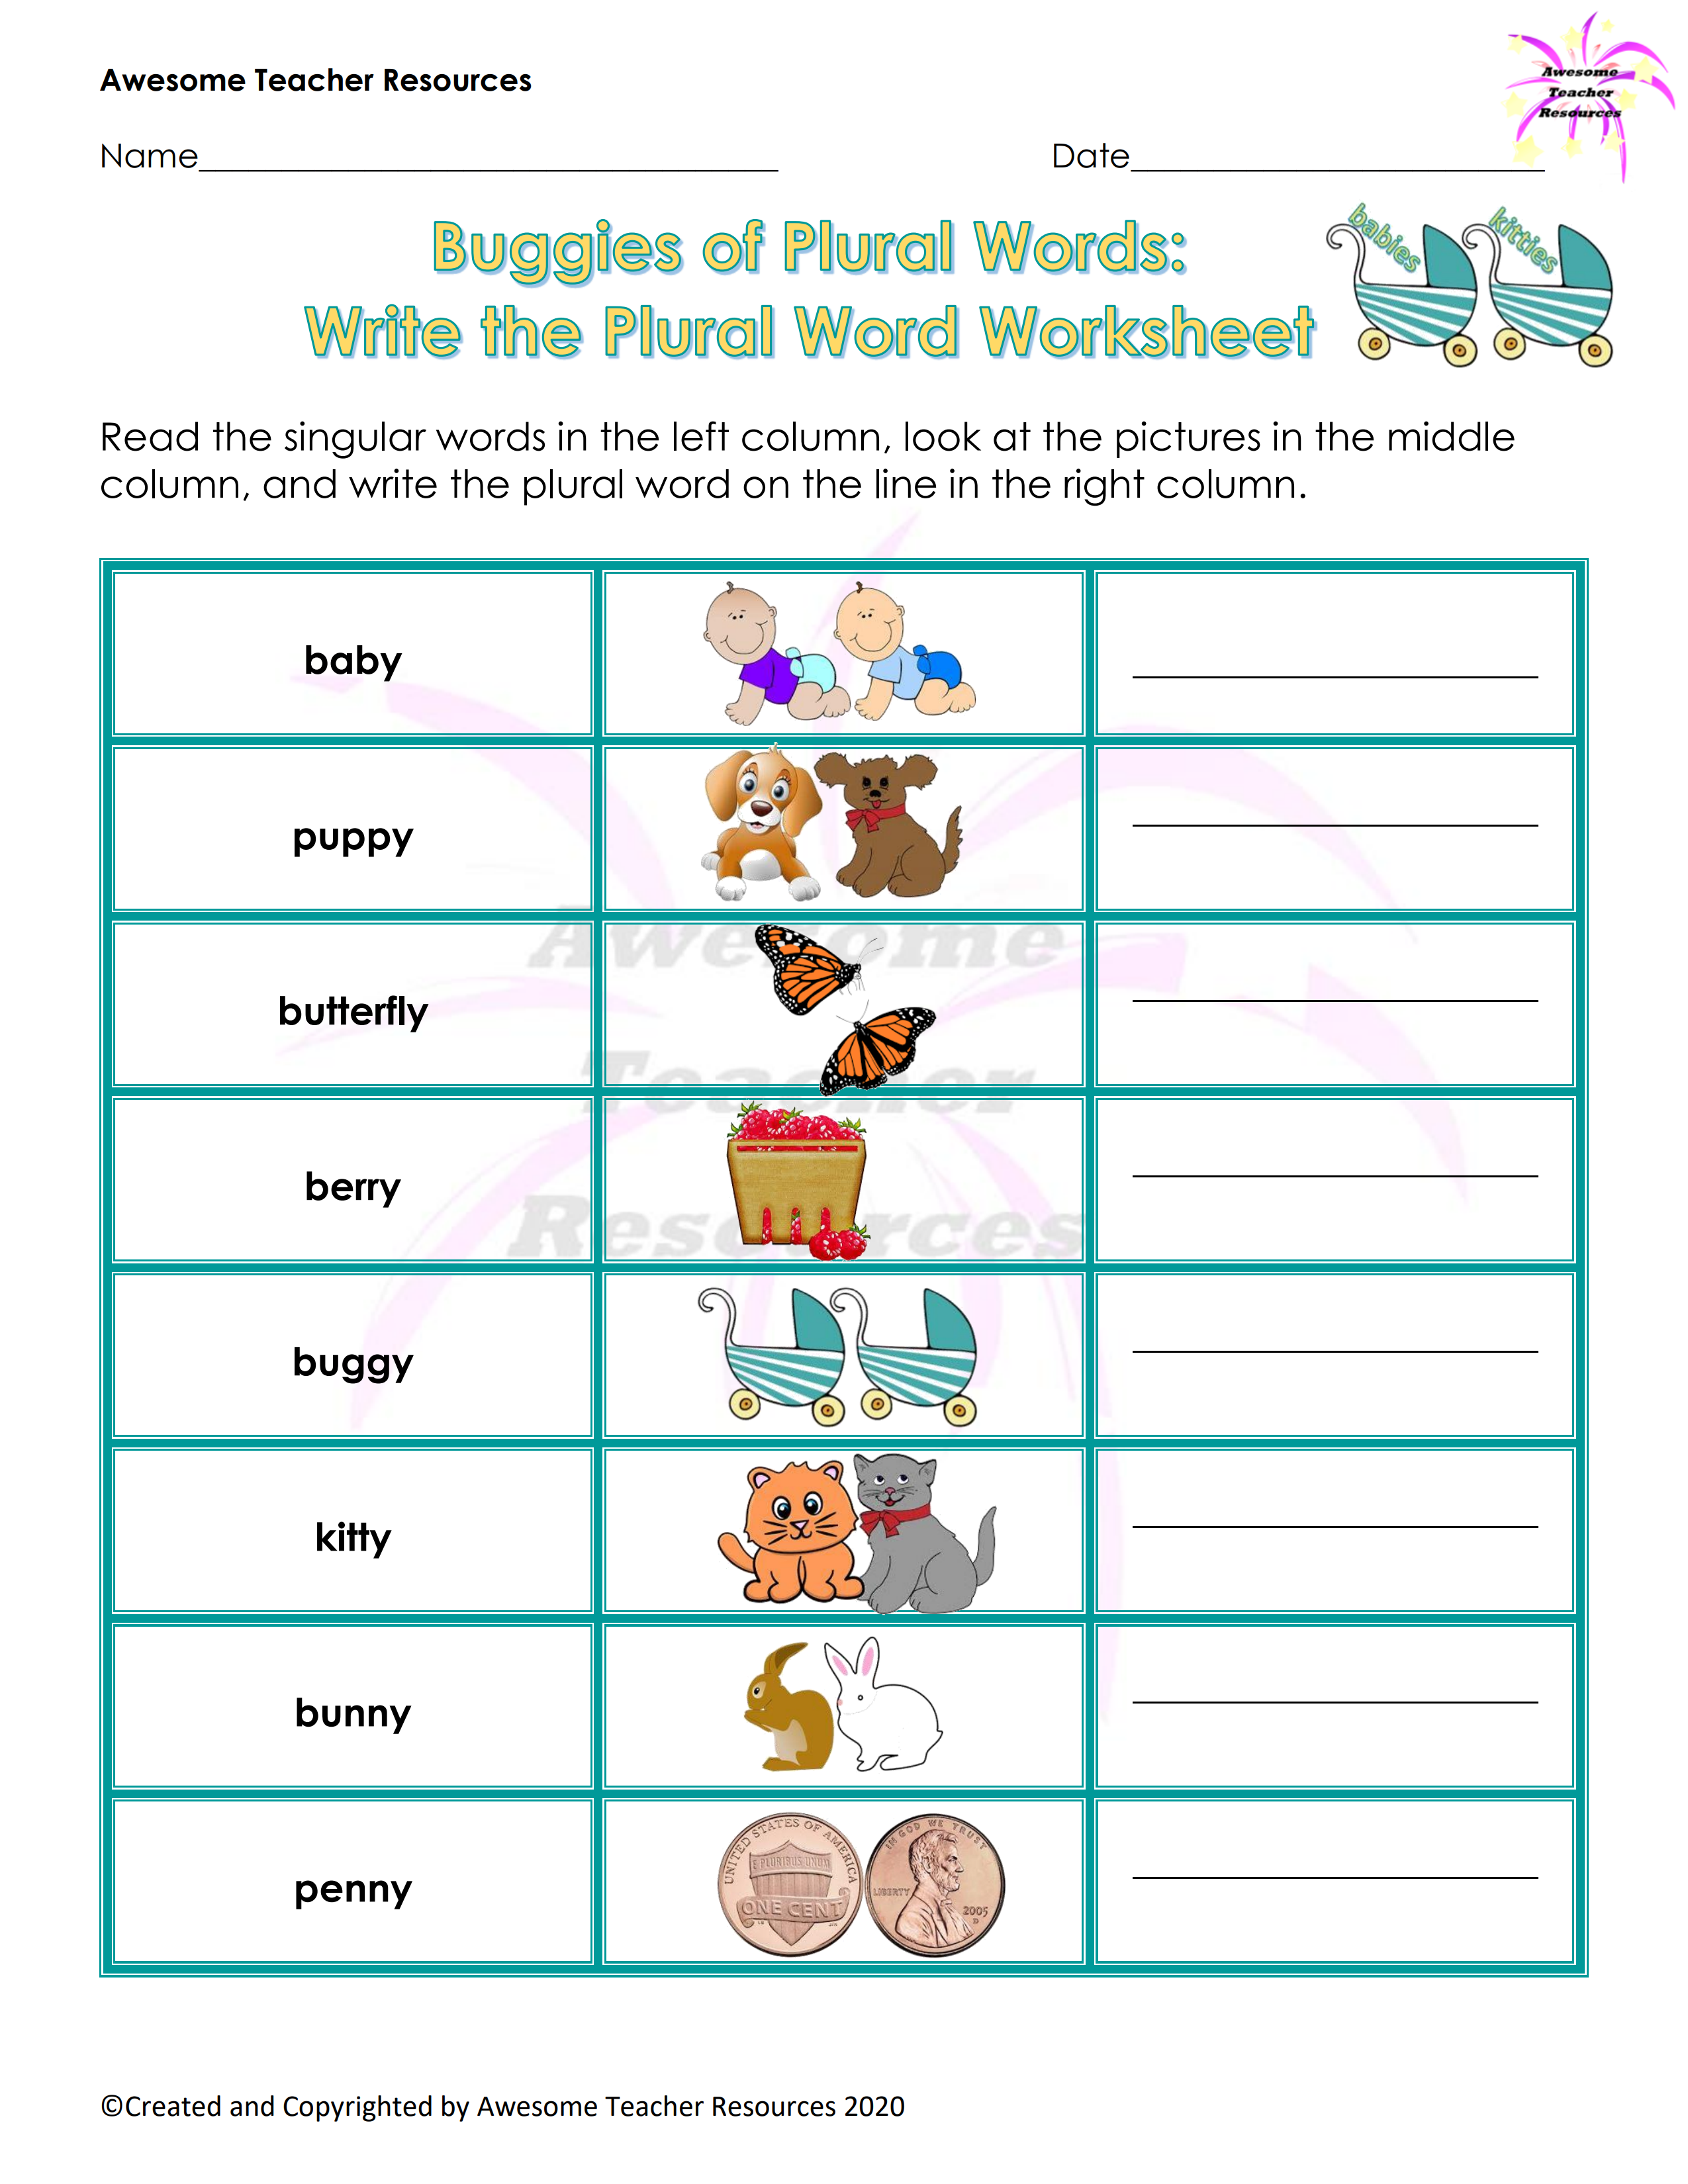 Buggies Of Plural Words Write The Plural Worksheet